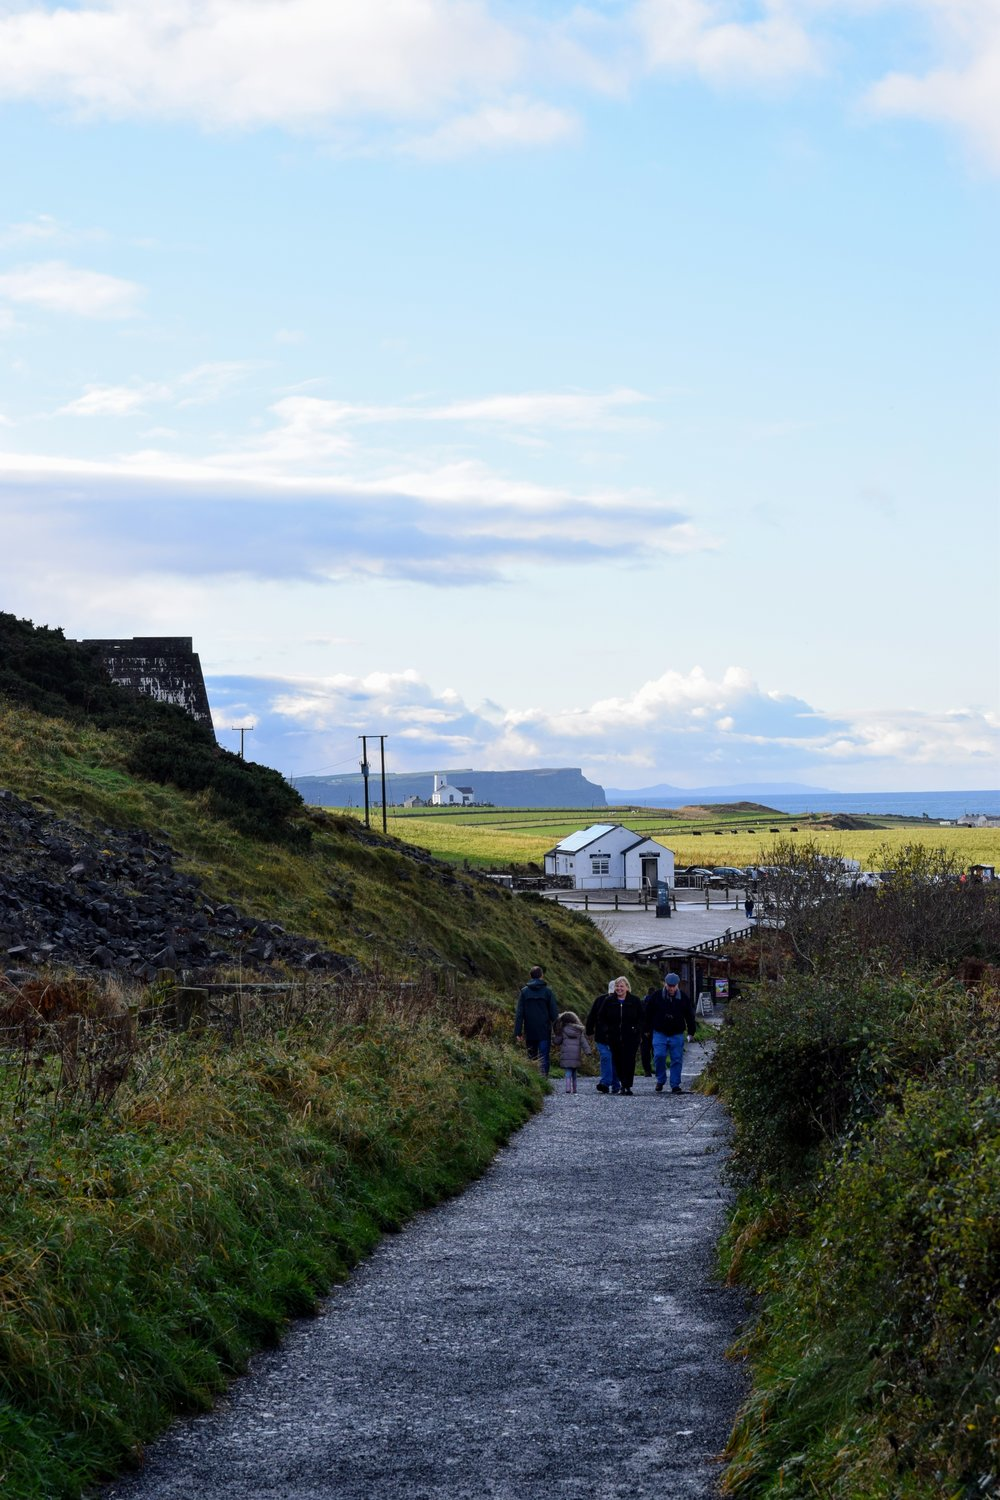 Path leading to  Carrick -a- Rede  in Ballintoy.  (Nikon D3330, 50mm, f/8, 1/  250 sec, ISO 280  )